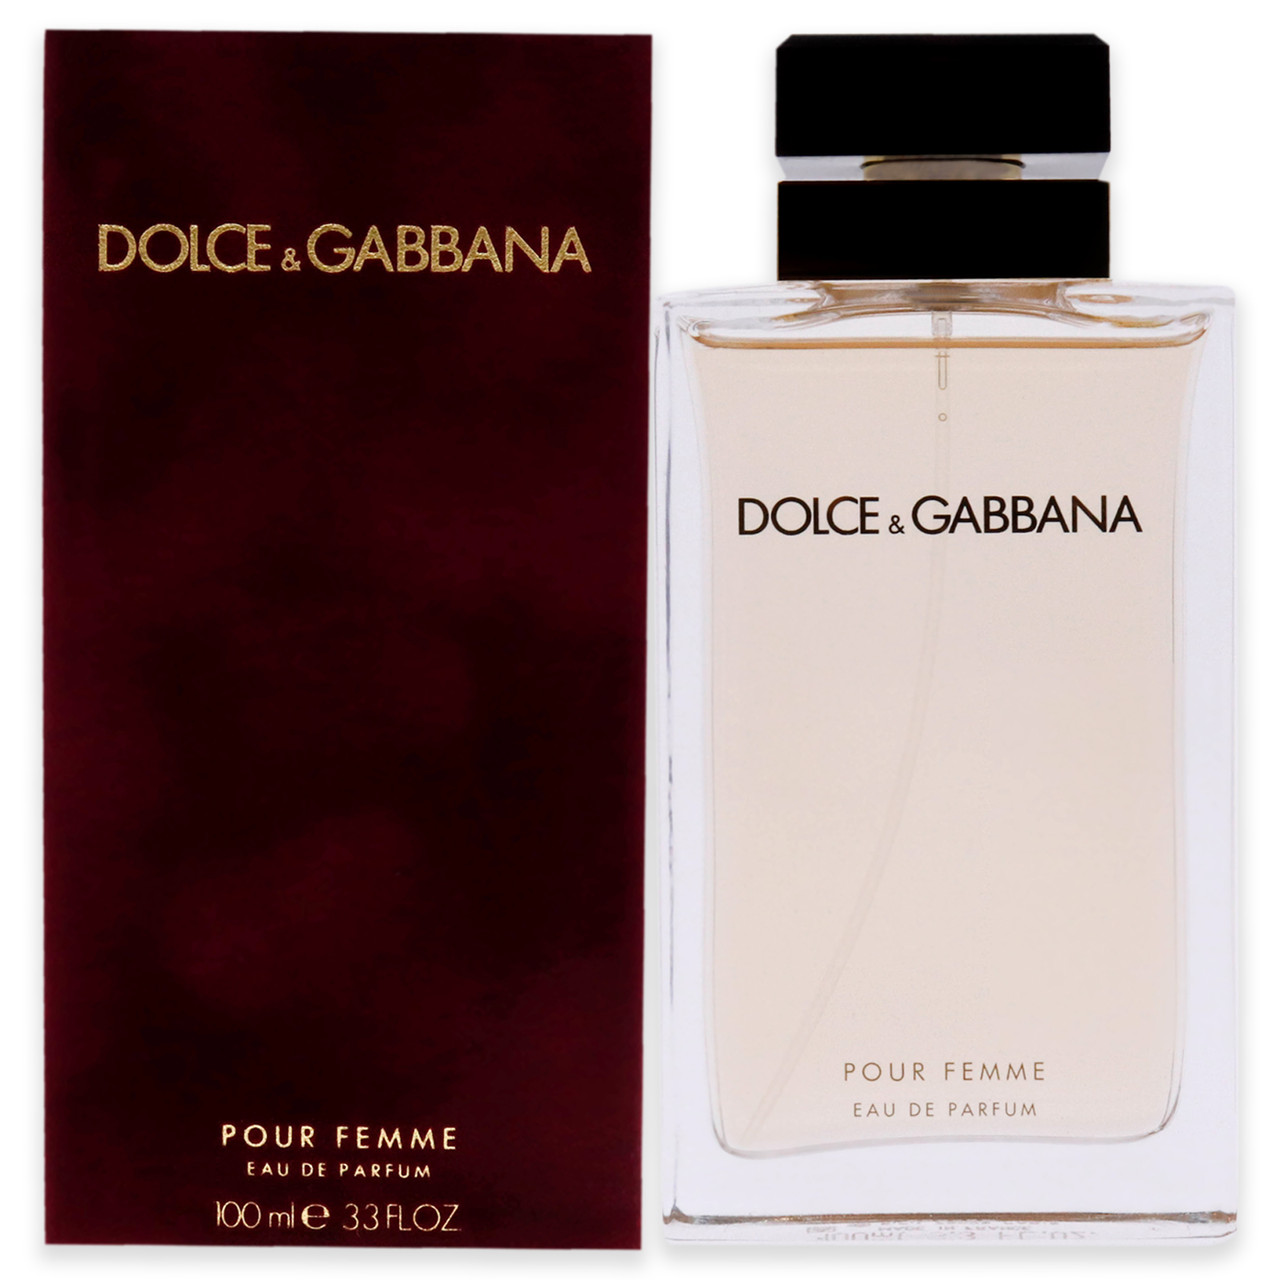 Dolce and Gabbana Pour Femme by Dolce and Gabbana for Women - 3.3 oz EDP Spray